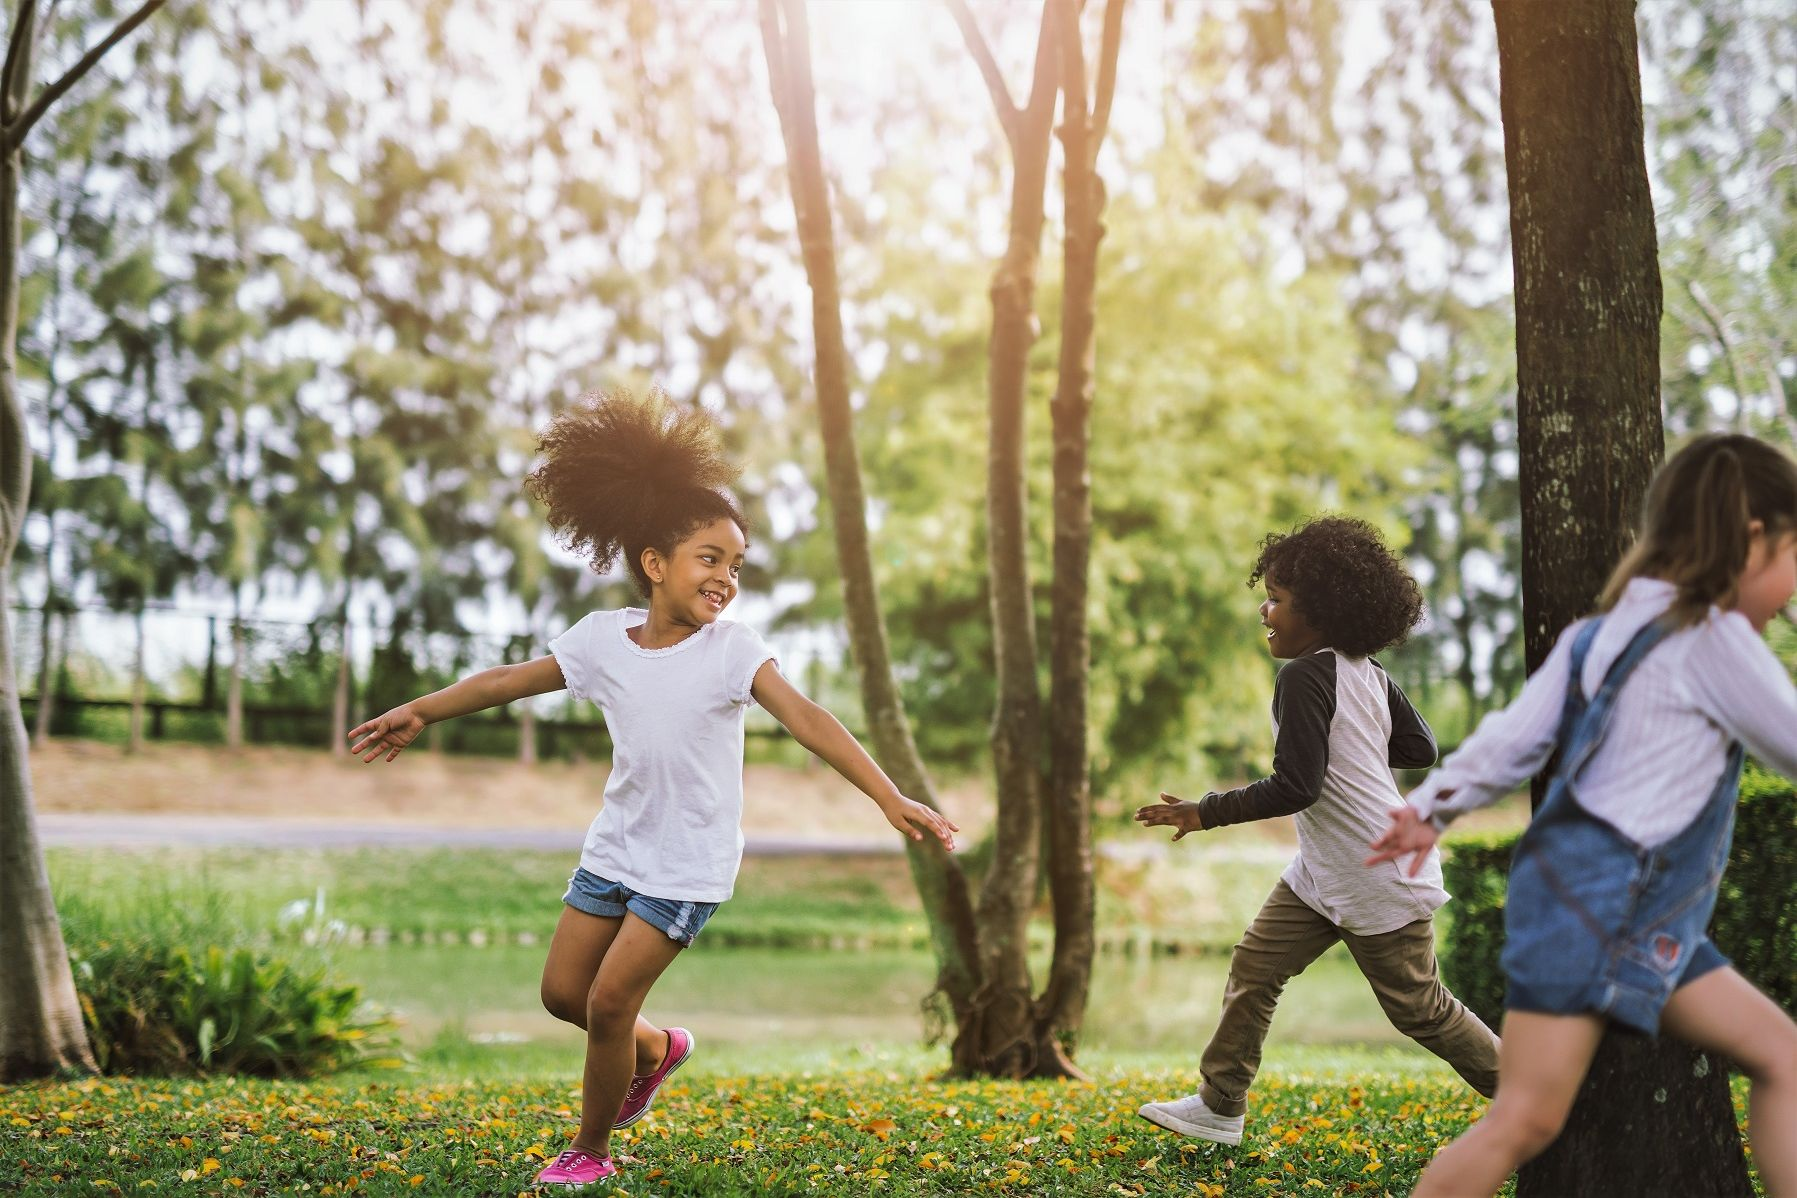 Kids Who Spend More Time Outside Are Happier Adults, Science Says